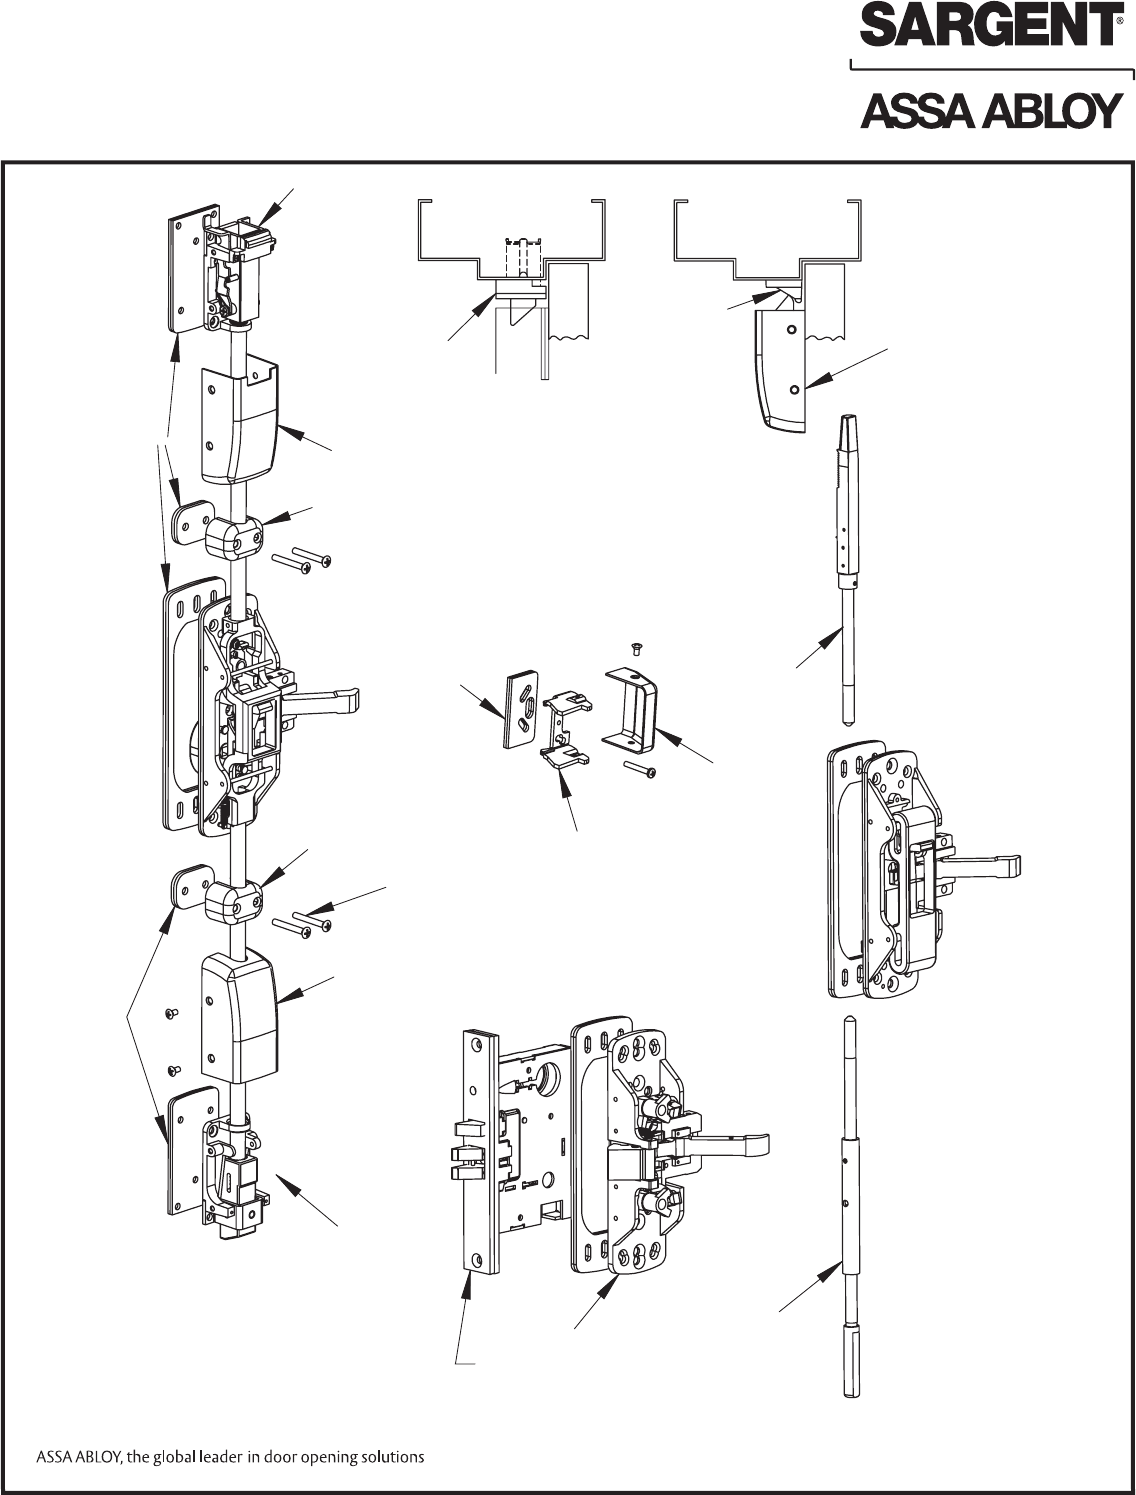 Sargent Instructions For Mounting 80 Series Exit Device